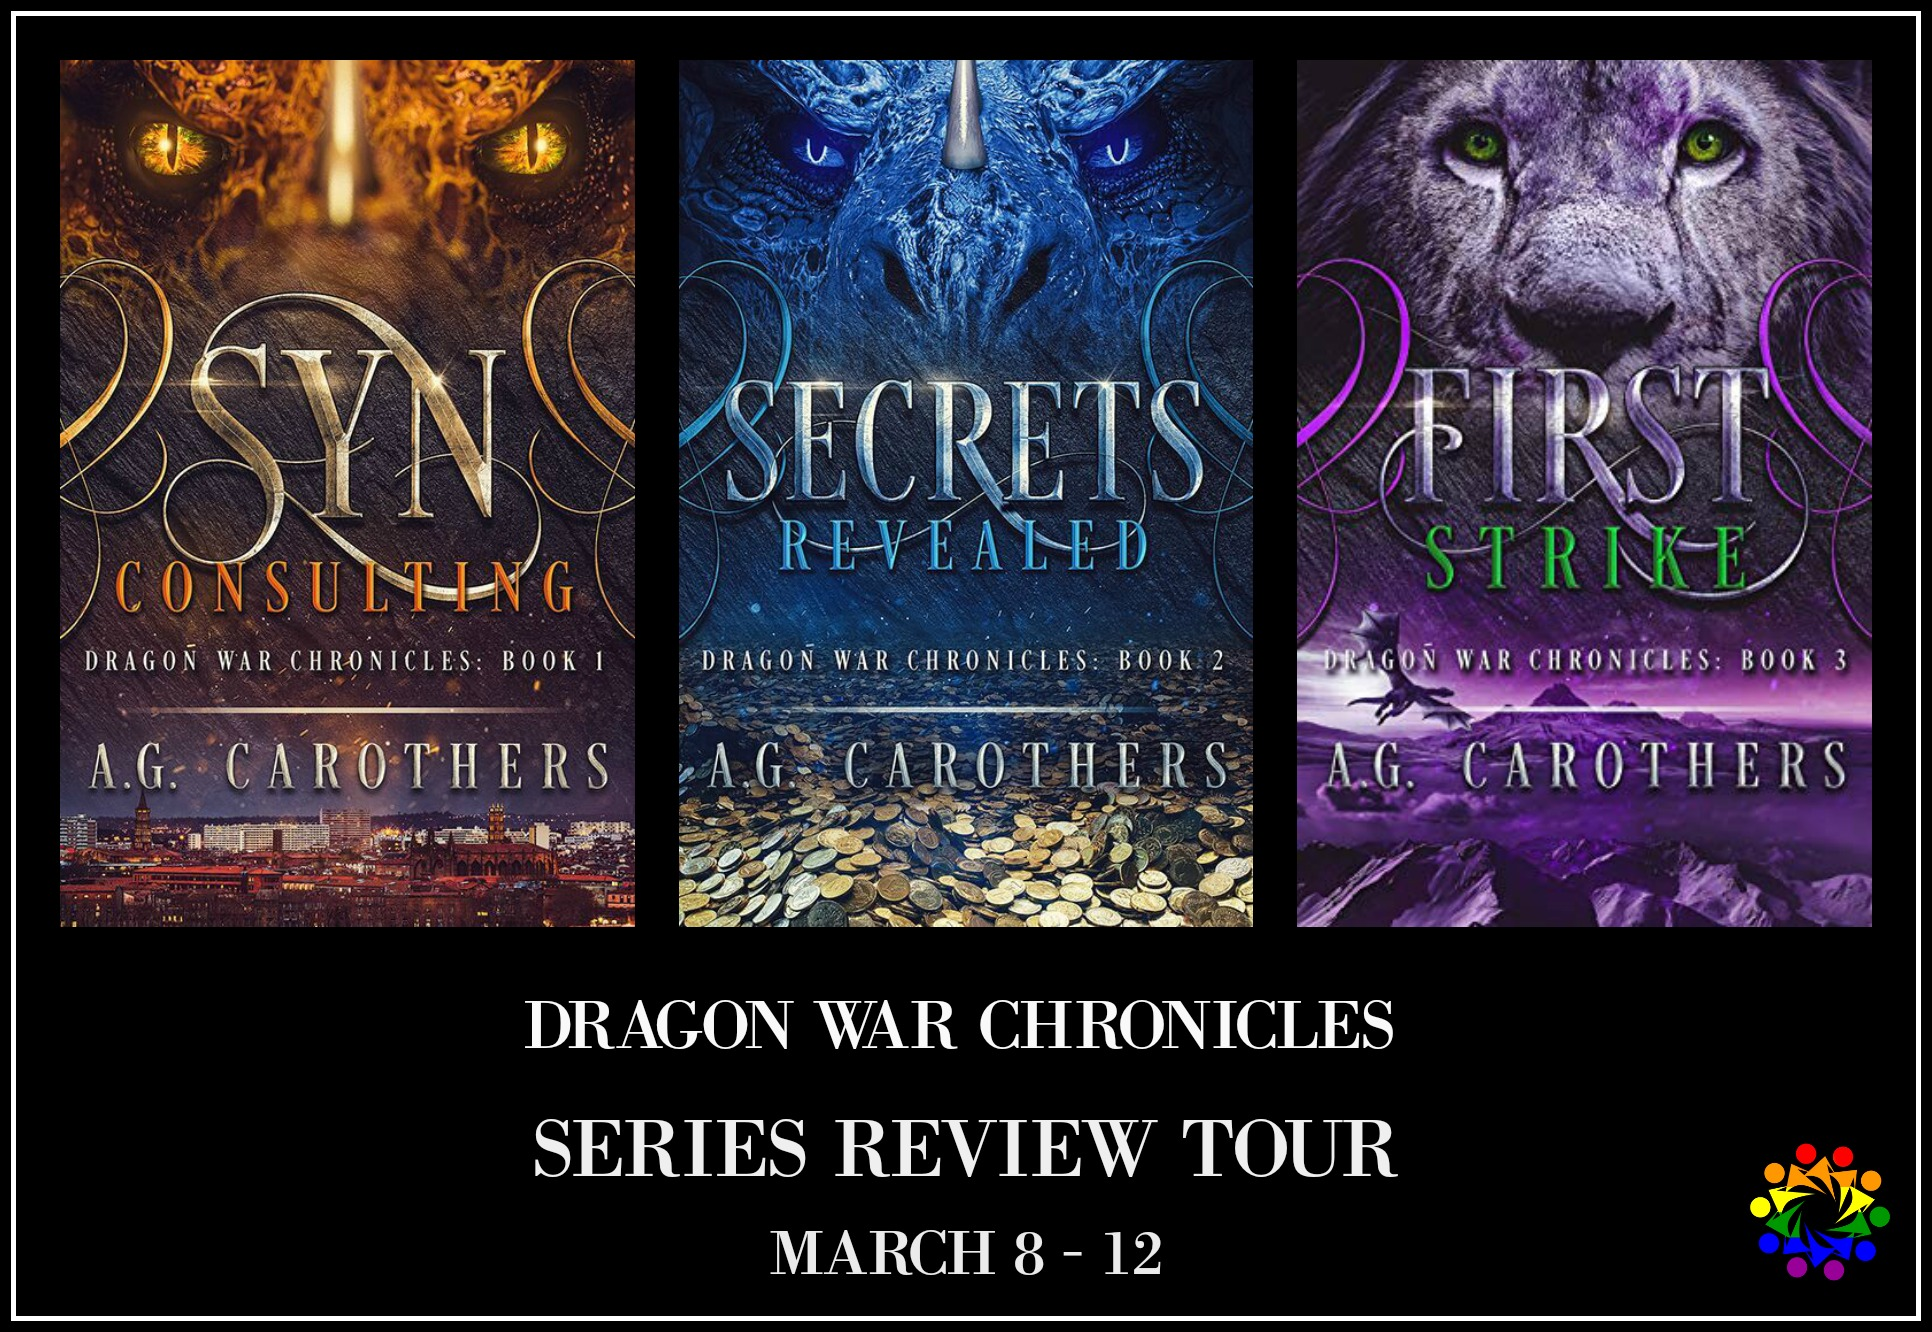 Dragon War Chronicles Consulting Revealed Strike AG Carothers LGBTQ Fantasy